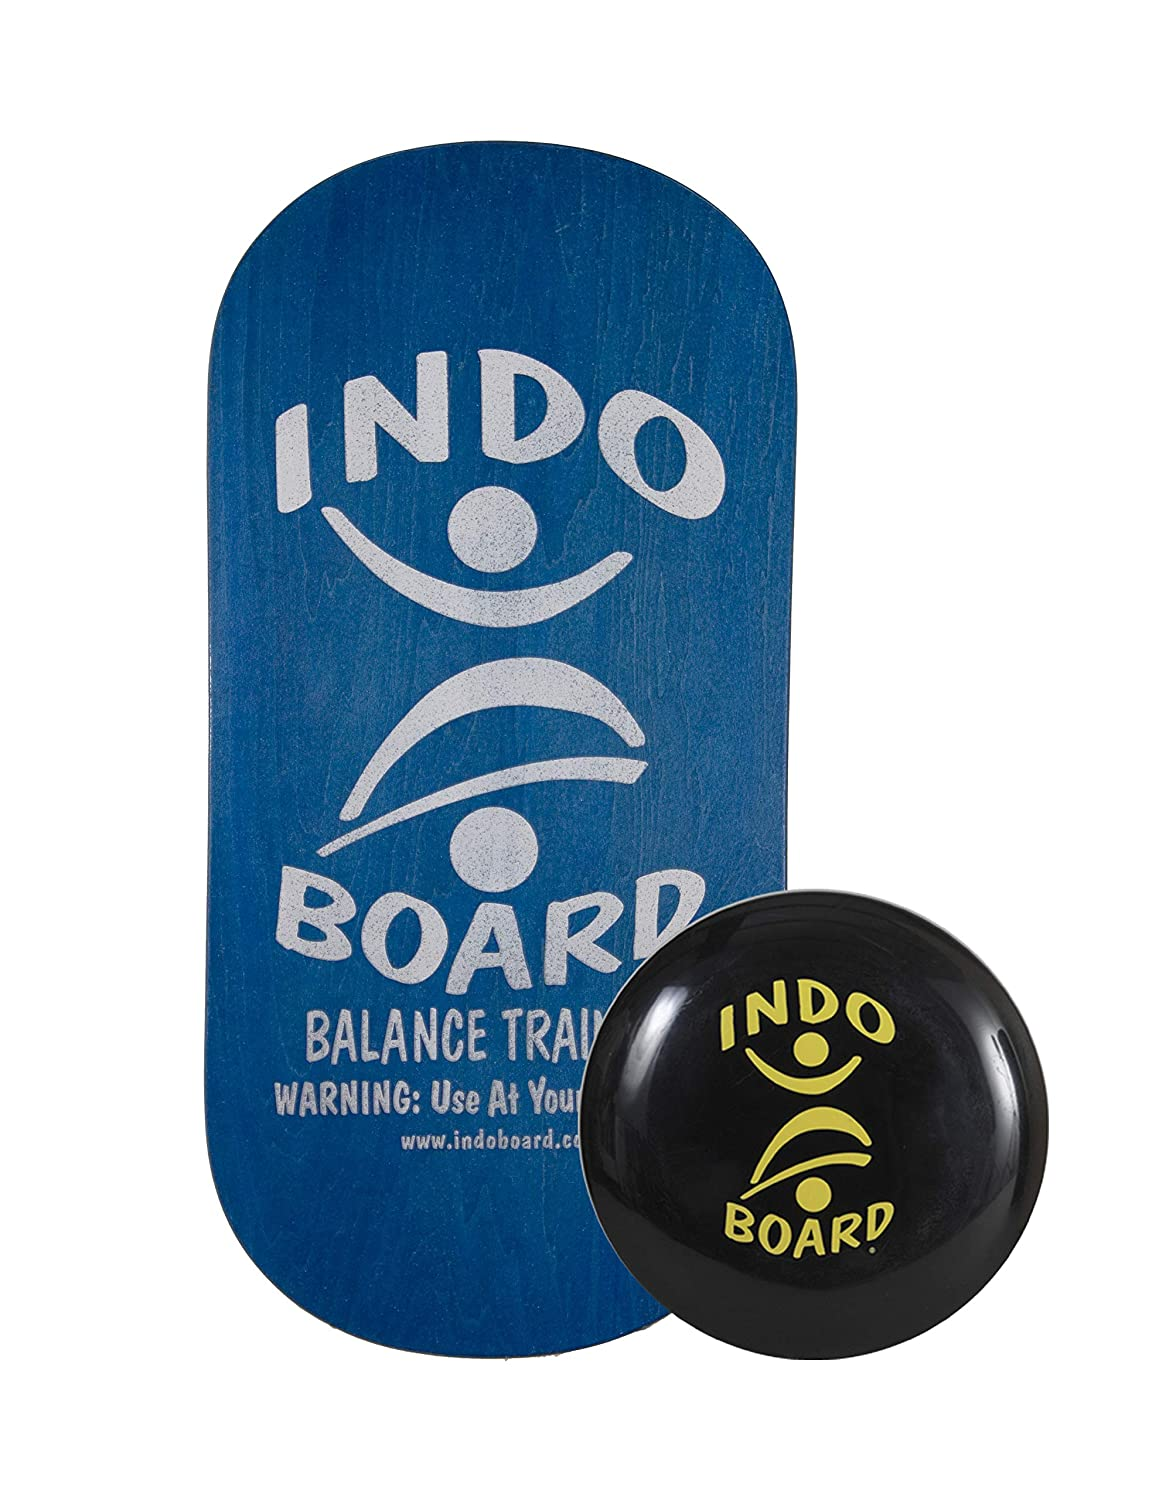 INDO BOARD Rocker Balance Board for Fitness, Physical Therapy or Use at A Standing Workstation. Comes with 33 X 15 Non-Slip Deck and 14 Cushion in 5 Colors